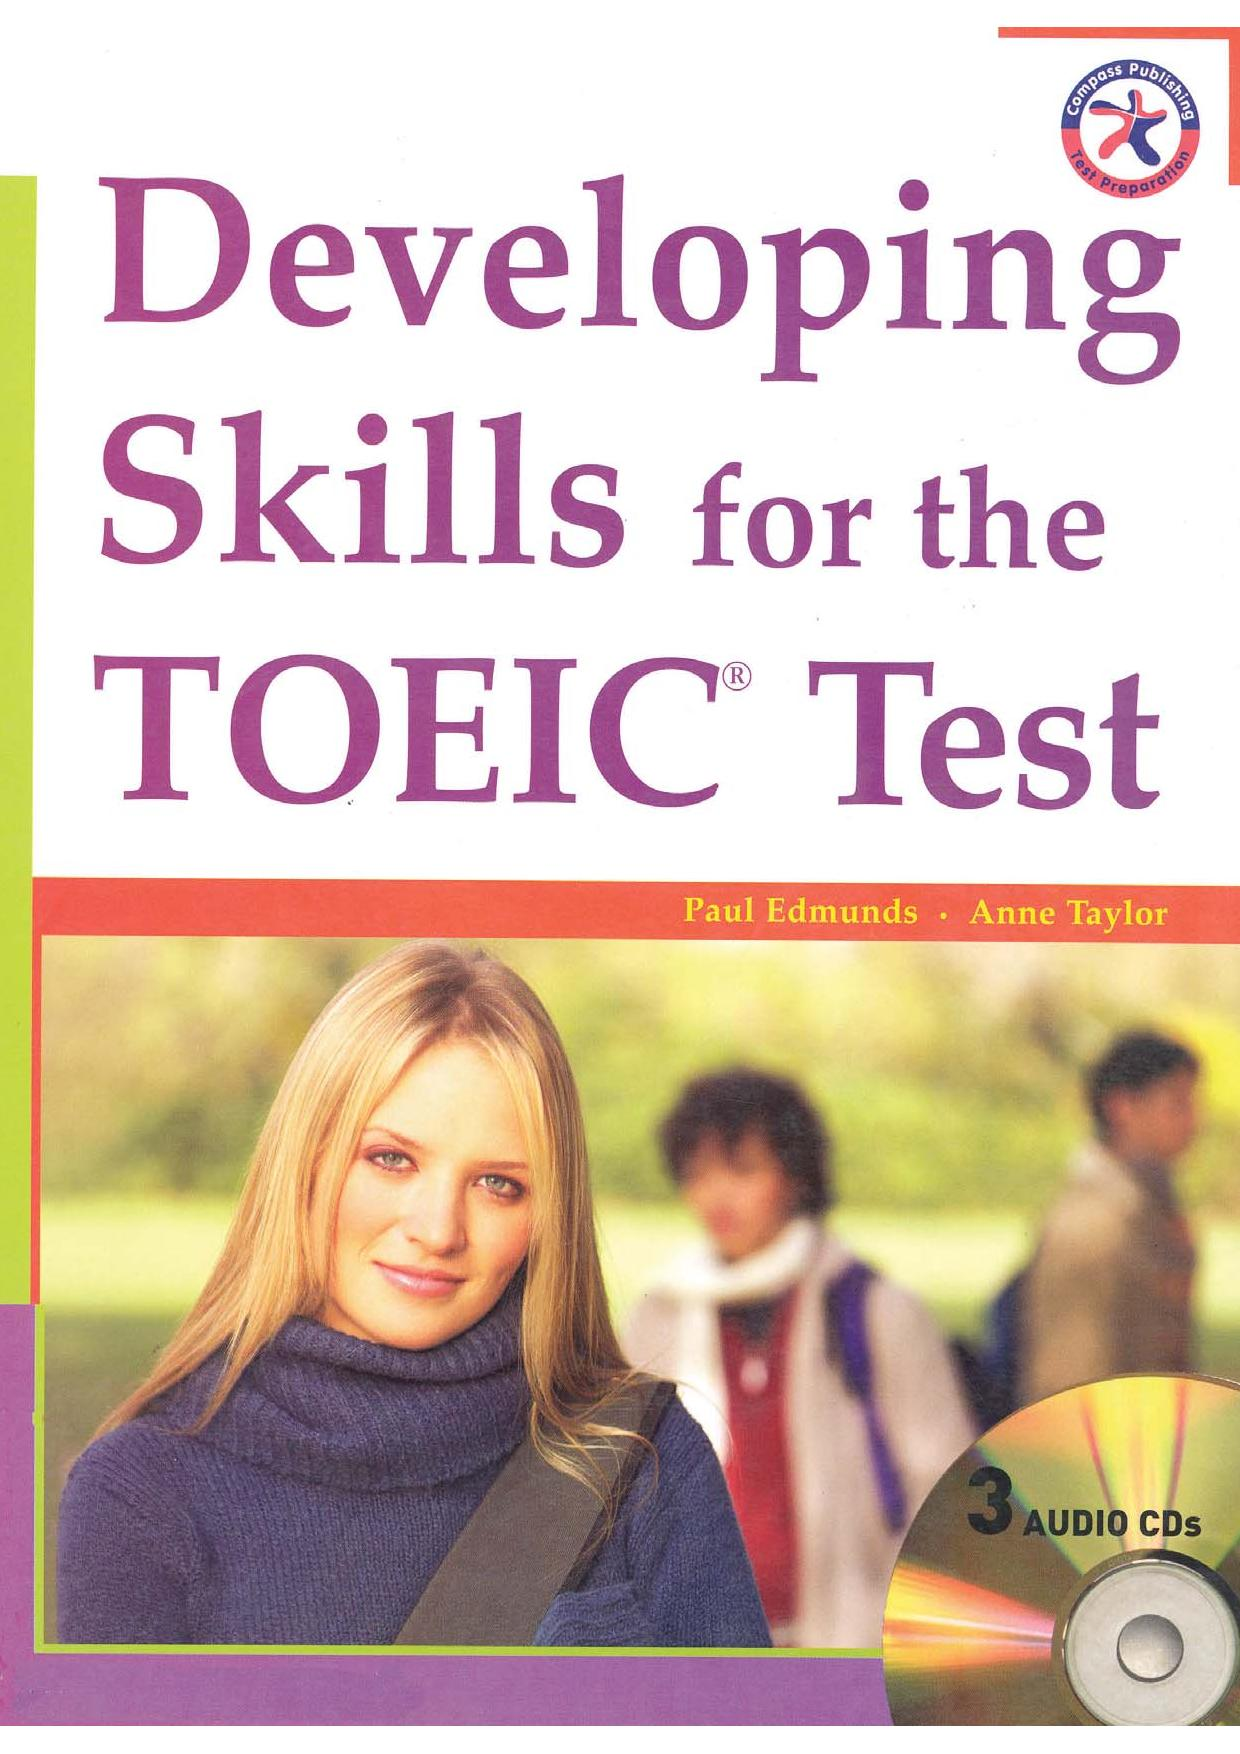 bìa cuốn sách Developing skills for TOEIC test